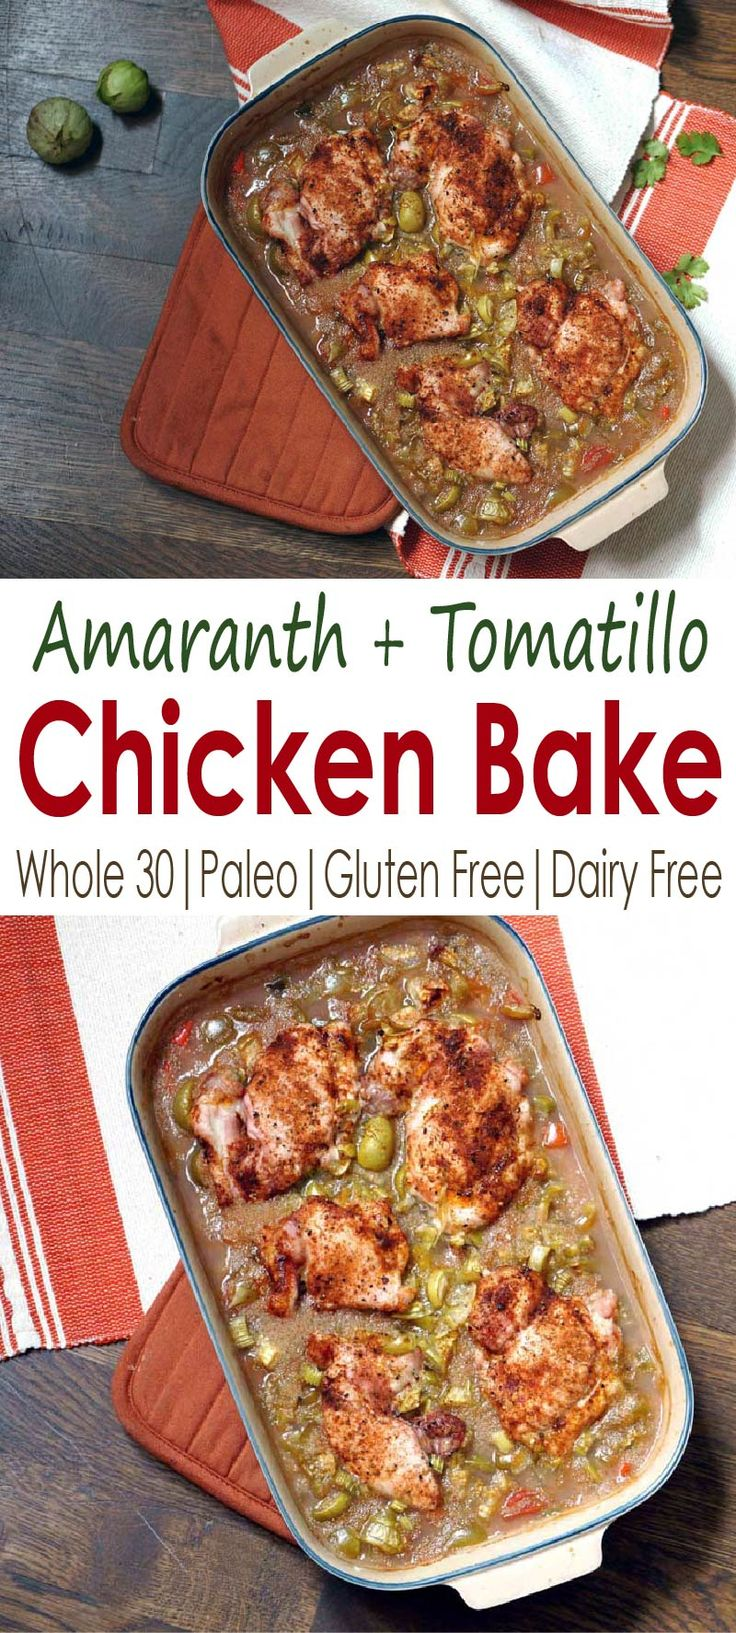 A foolproof recipe for weeknight dinners or to bring for a meal train, this amaranth and tomatillo chicken bake is loaded with protein, vitamins, and flavor.South of the Border Amaranth and Tomatillo Chicken Bake  http://eatyourwayclean.com/amaranth-and-tomatillo-chicken-bake/